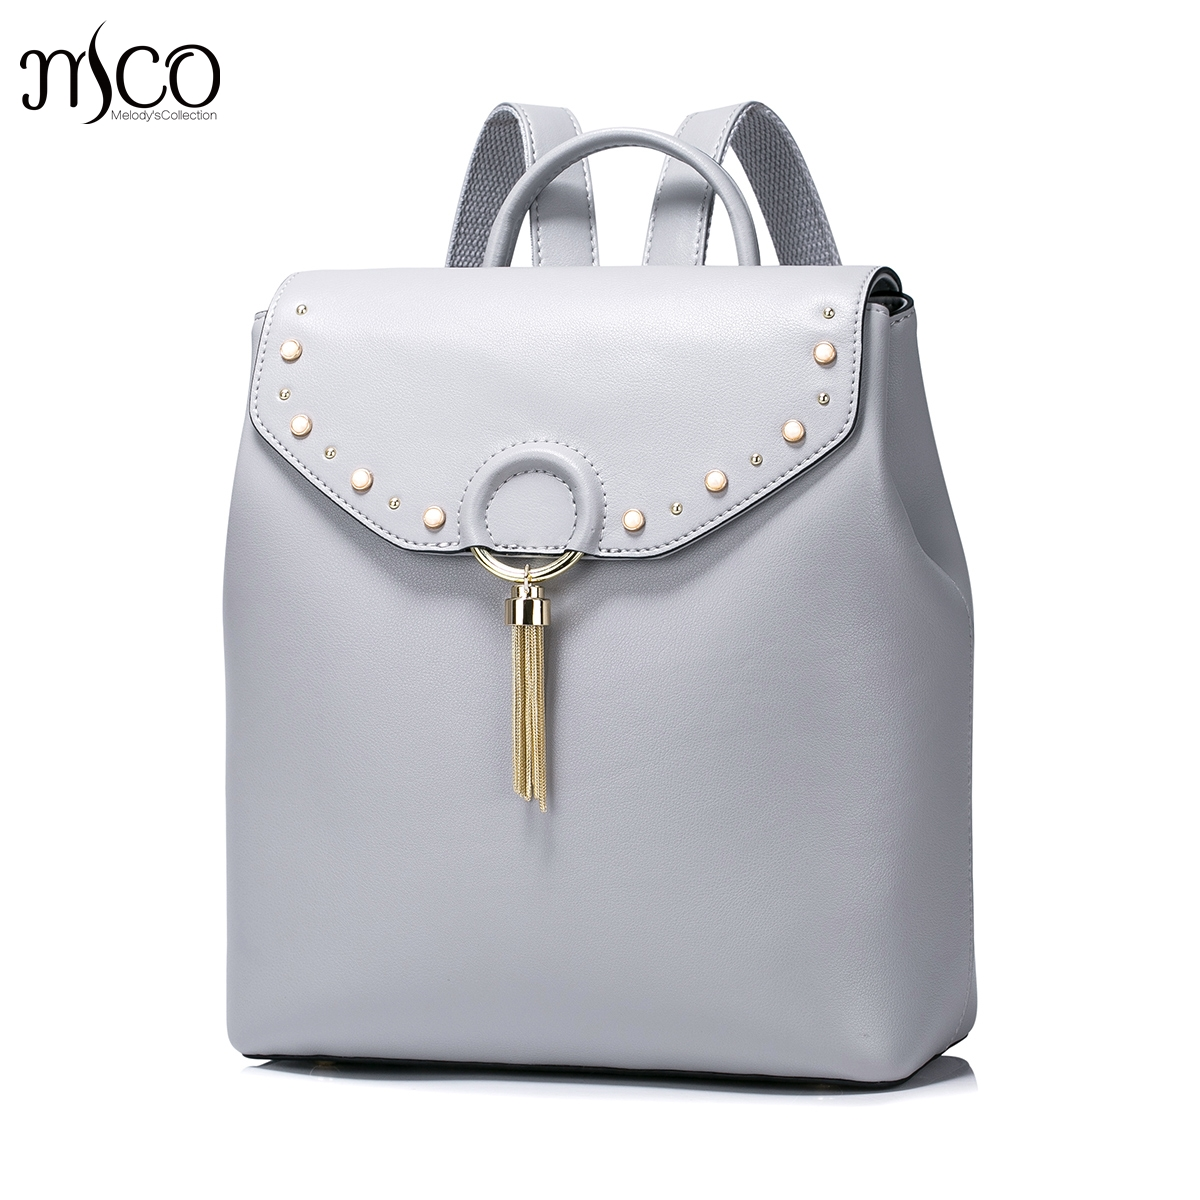 High Quality Fashion Genuine Leather Soft Backpack For Women Tassels Pearls Ring Diamond Shoulder Bags School bag Daypack Travel red fox спальный мешок arctic sr right regular 7082 св серый синий ss17